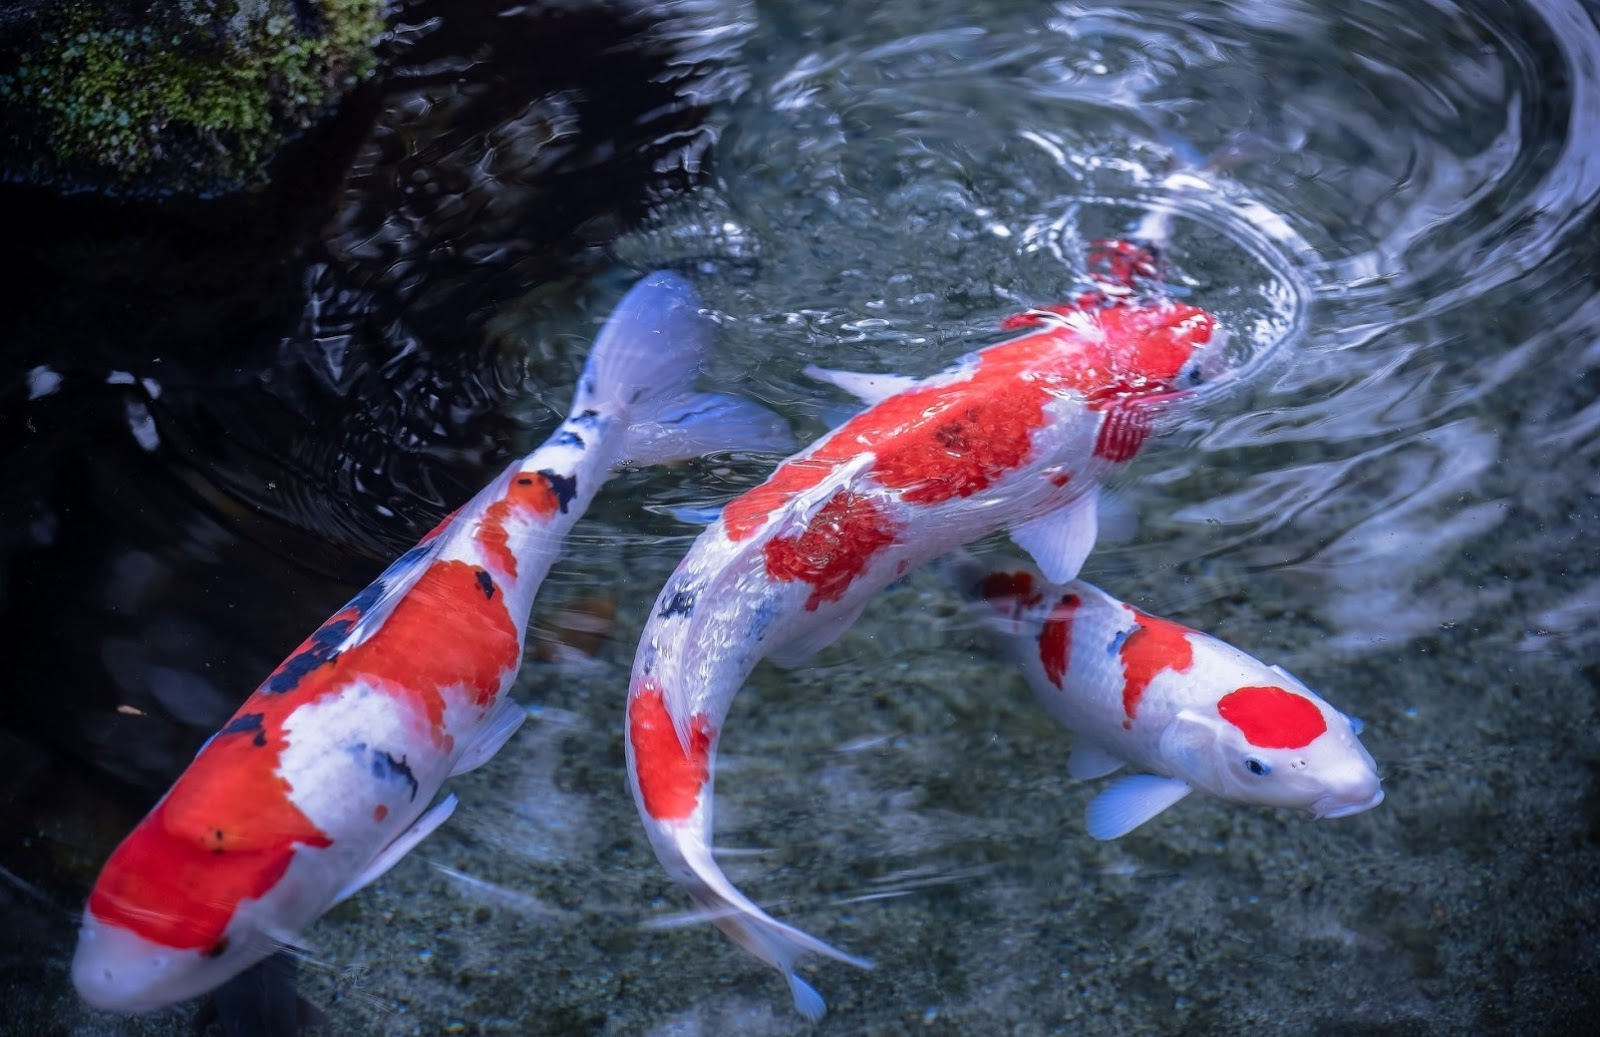 Koi fish fishes world hd images free photos for Koi fish aquarium